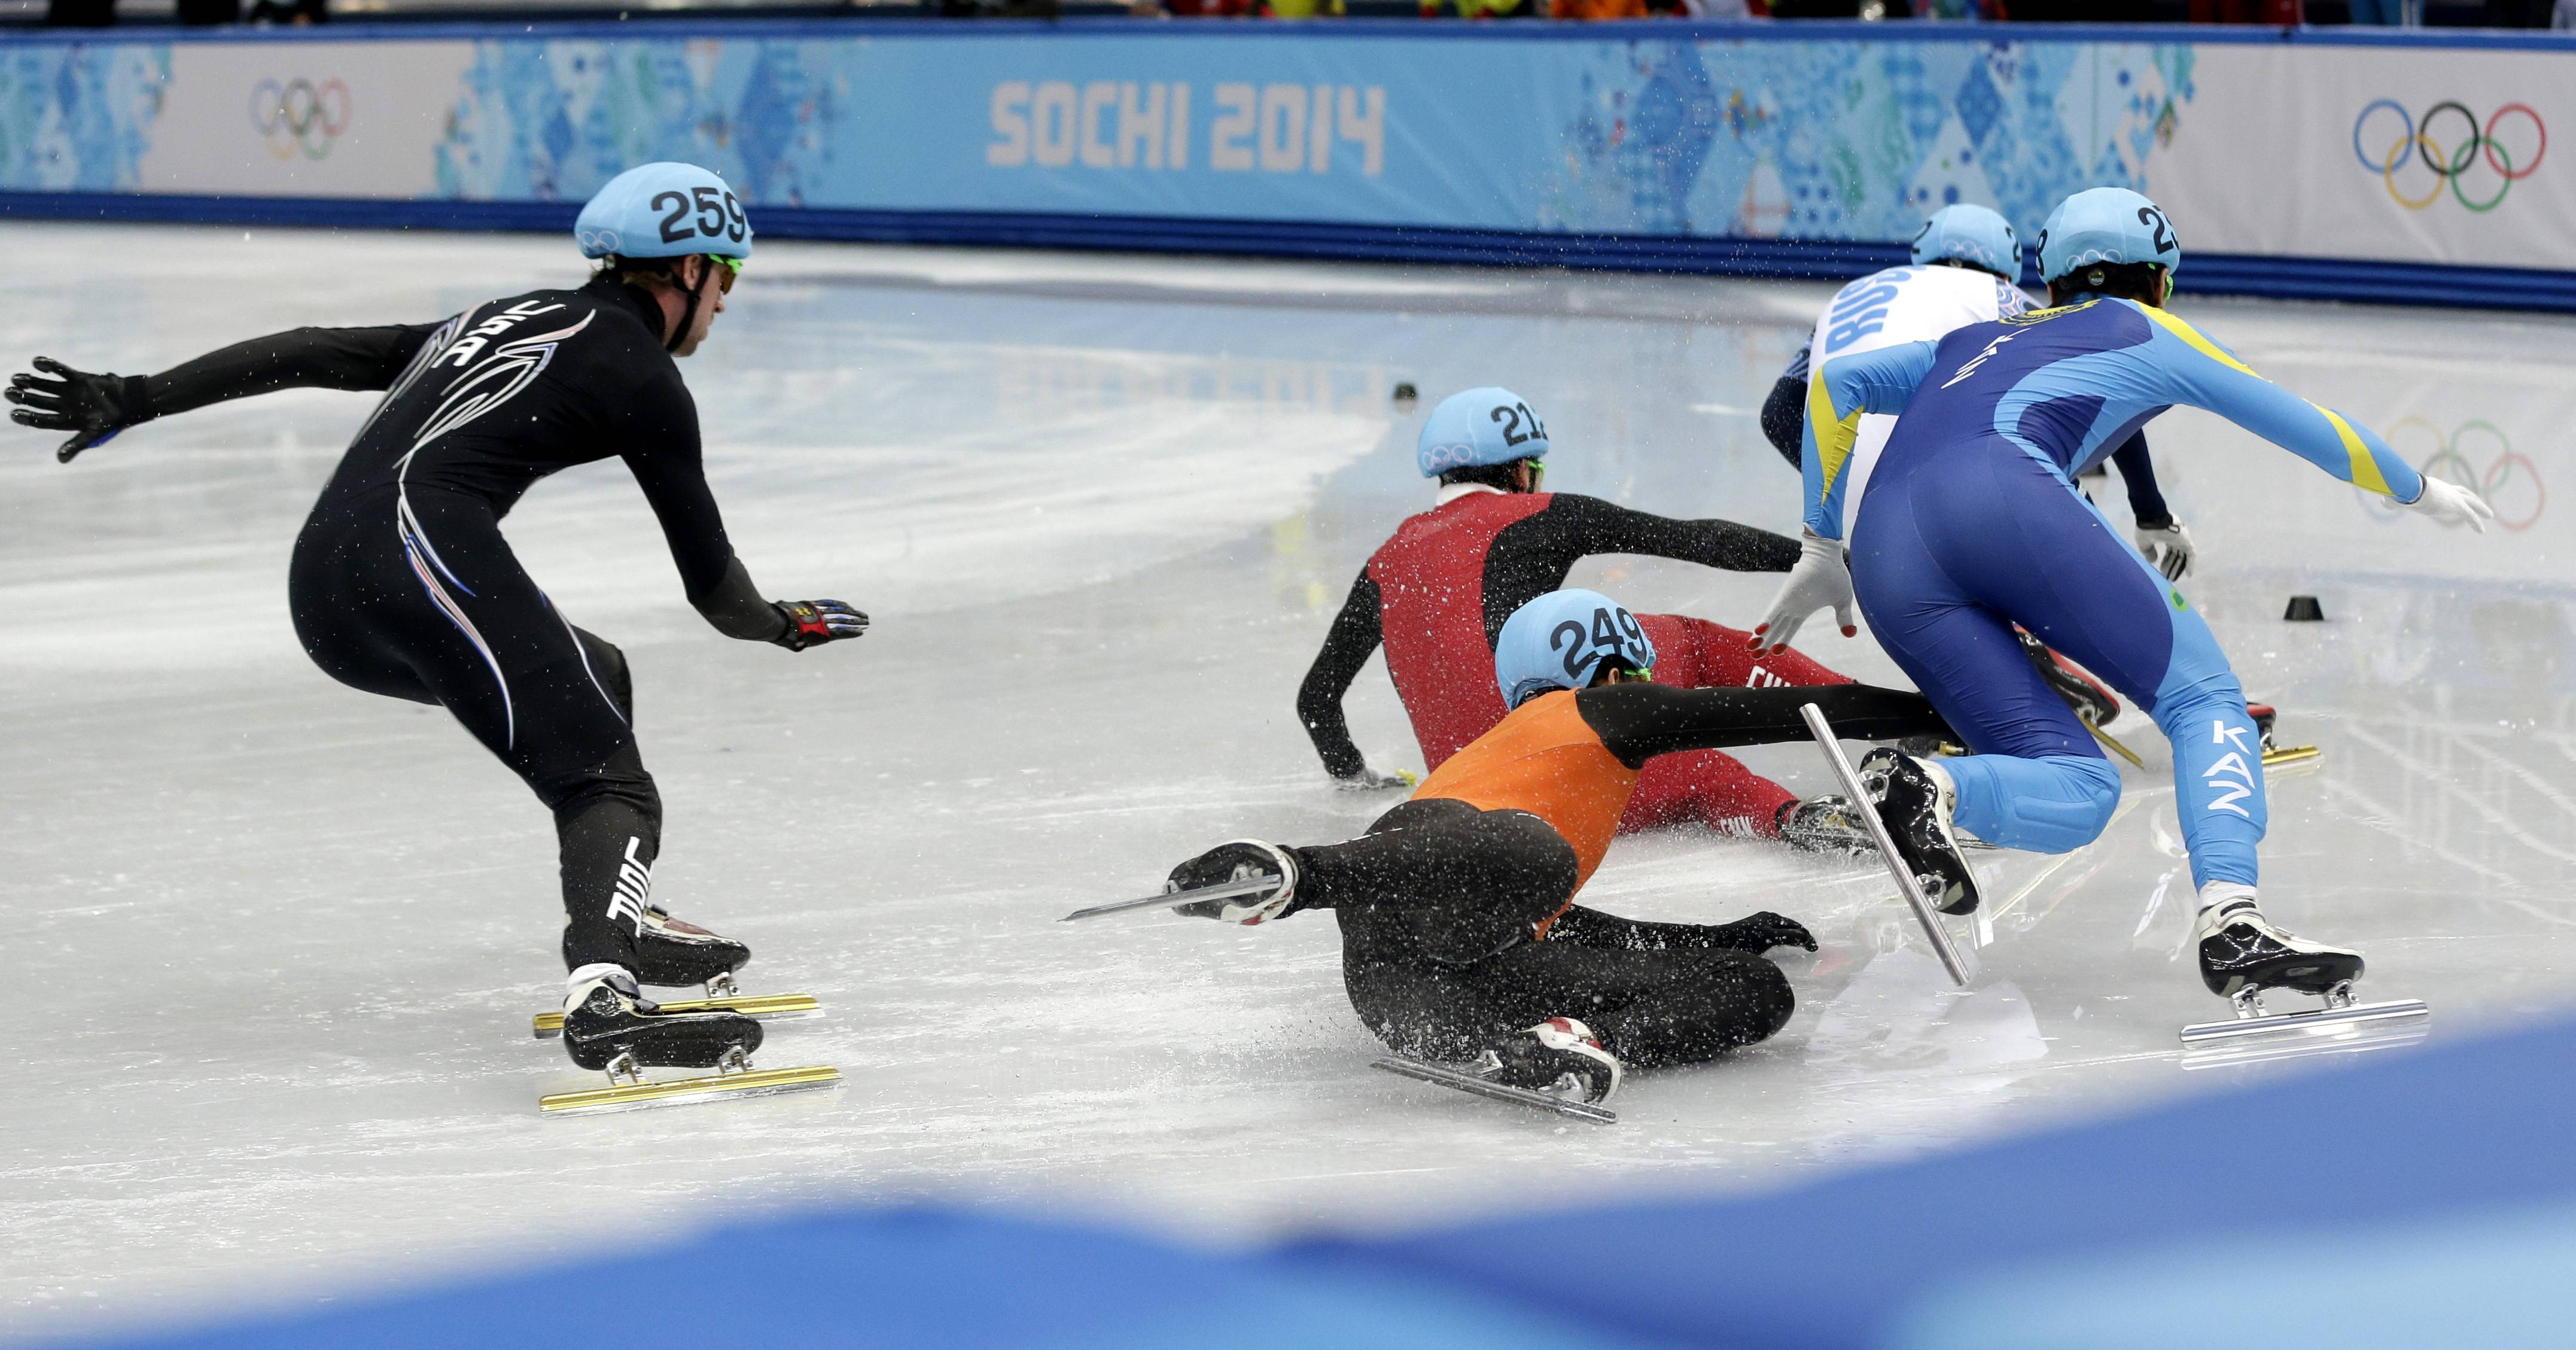 Freek van der Wart of the Netherlands, center foreground, and Wu Dajing of China, center back, crash out in the men's 5000m short track speedskating relay final.